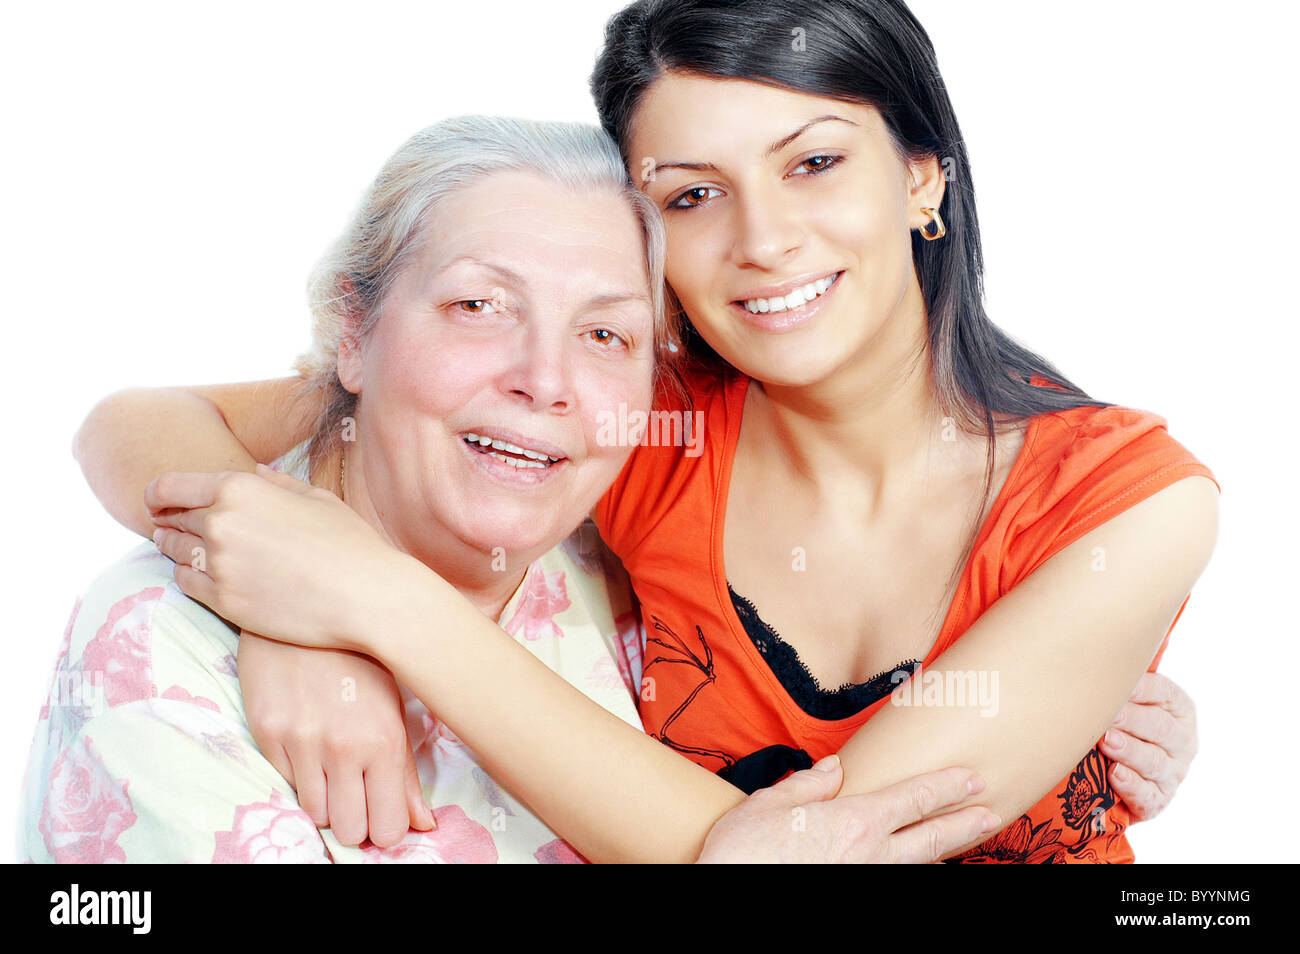 Smiling grandmother and granddaughter embracing,white background ,horizontal - Stock Image